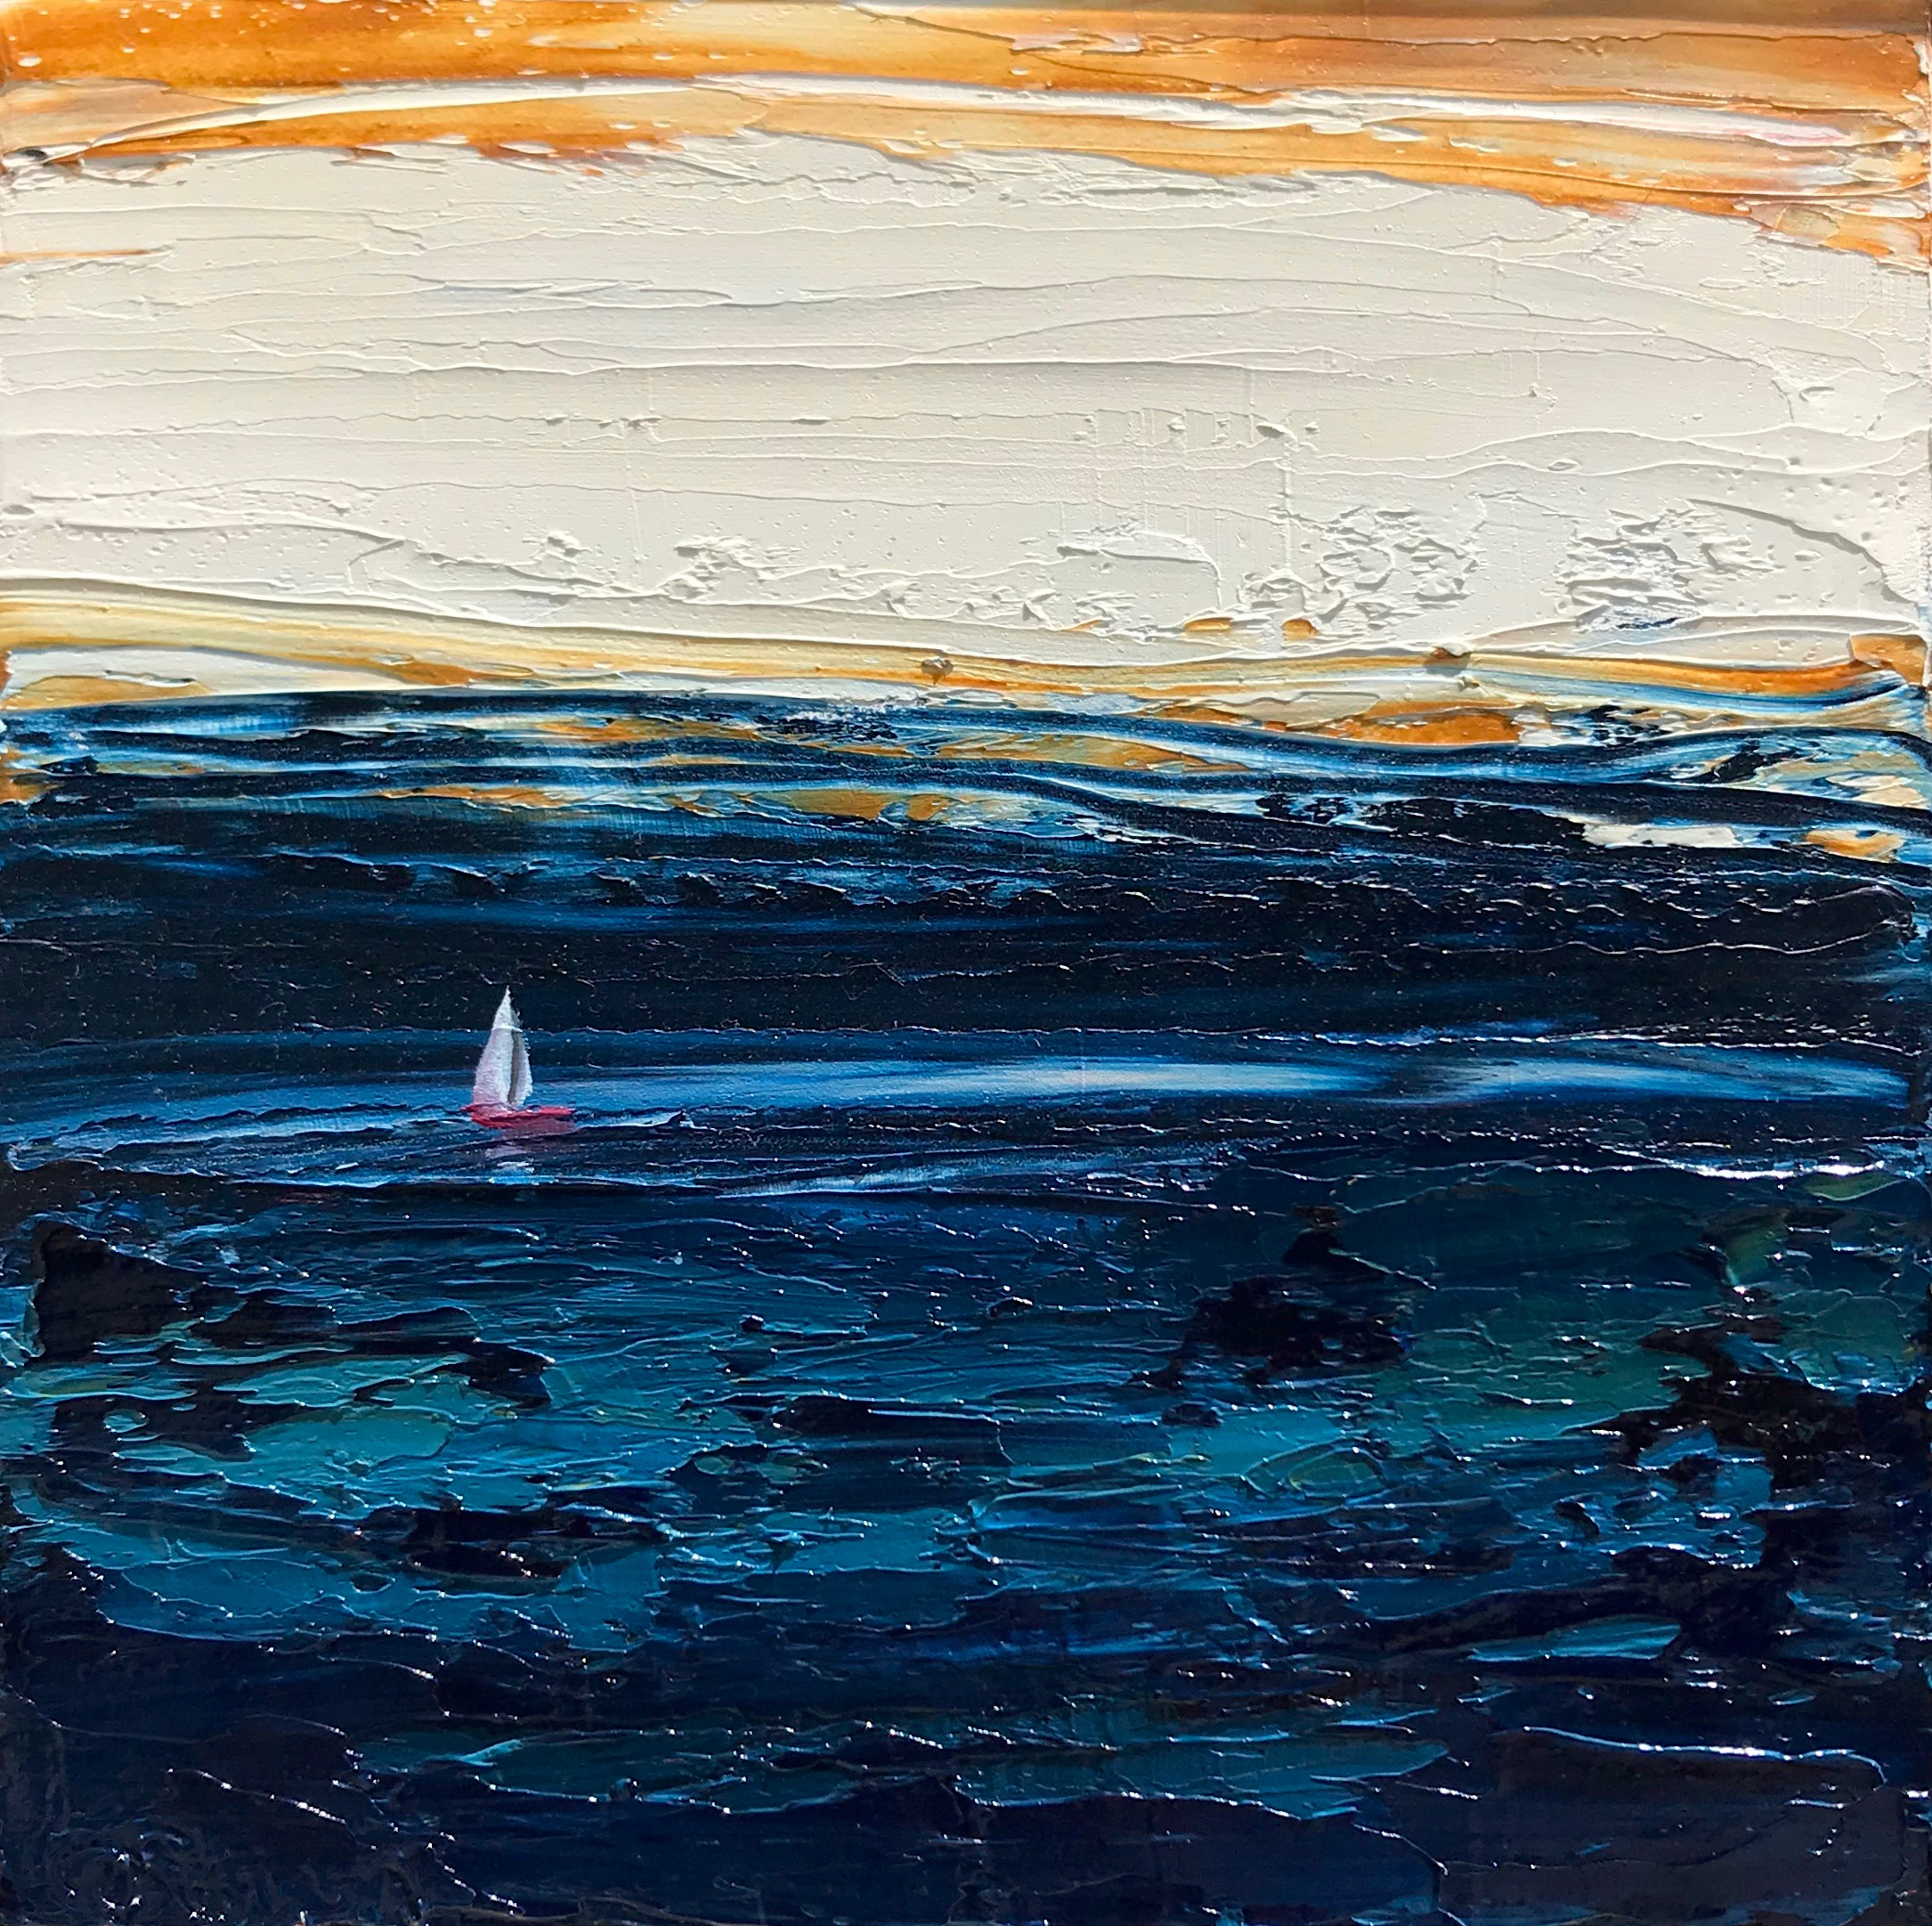 Little Red Sailboat in the Churning Sea